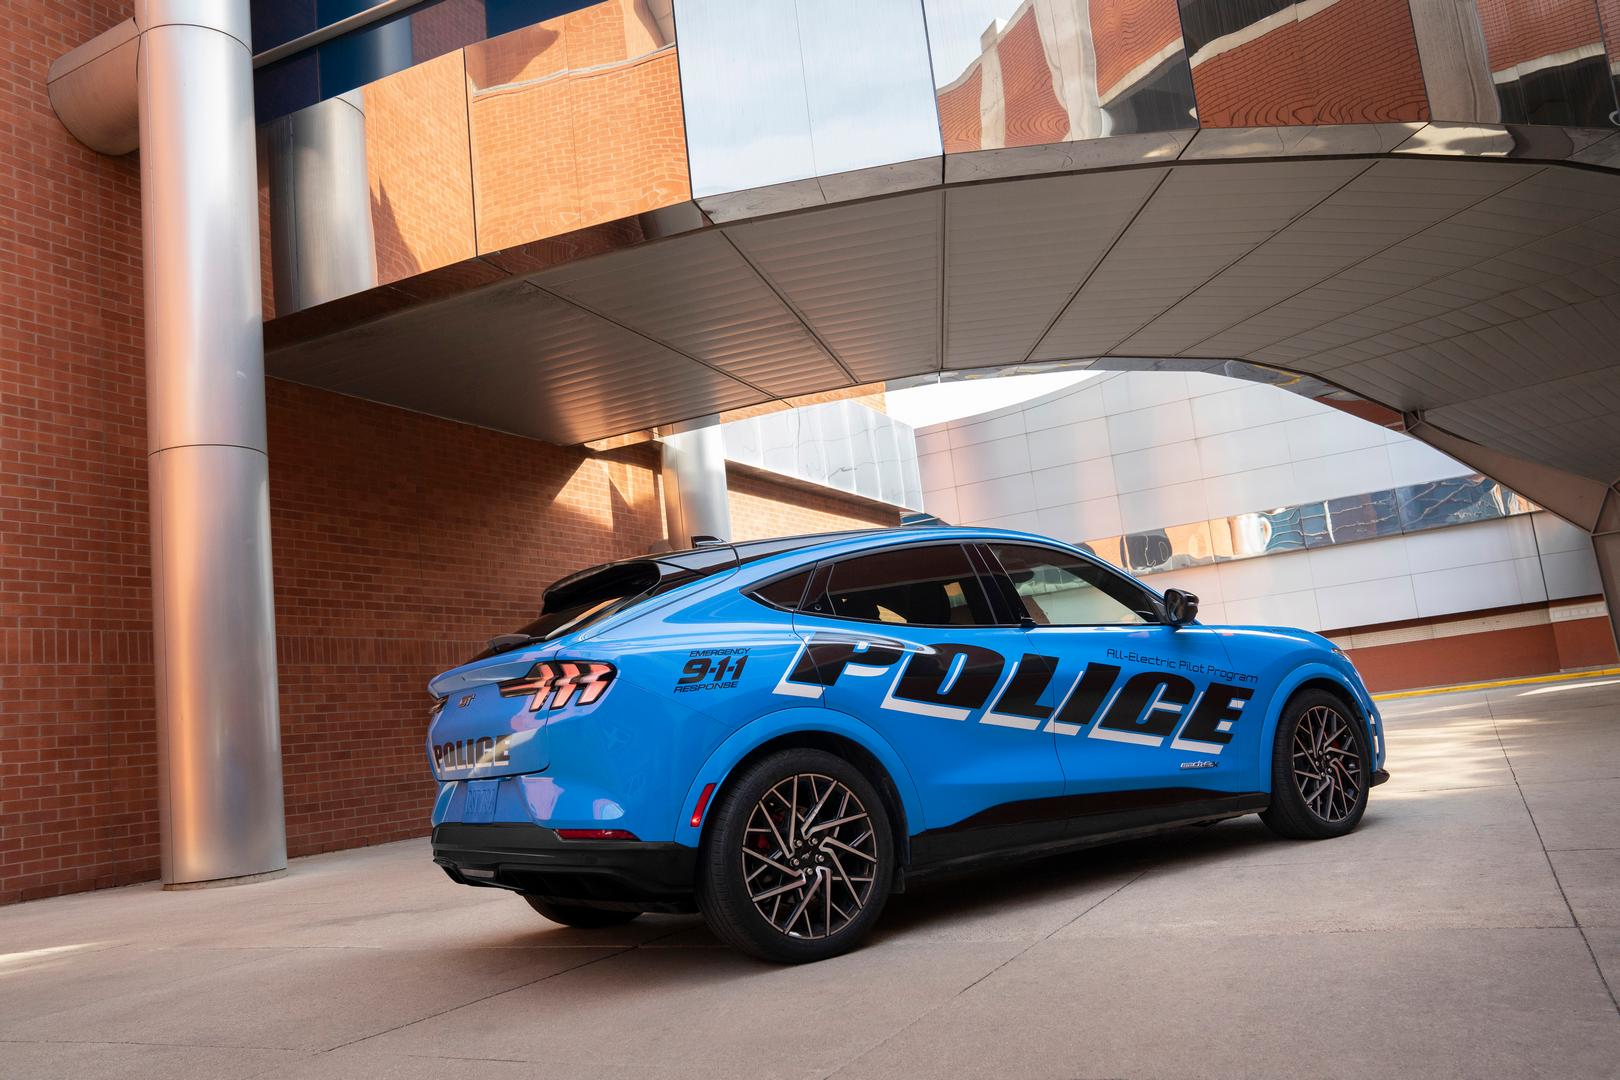 Ford Mustang Mach E Police specs